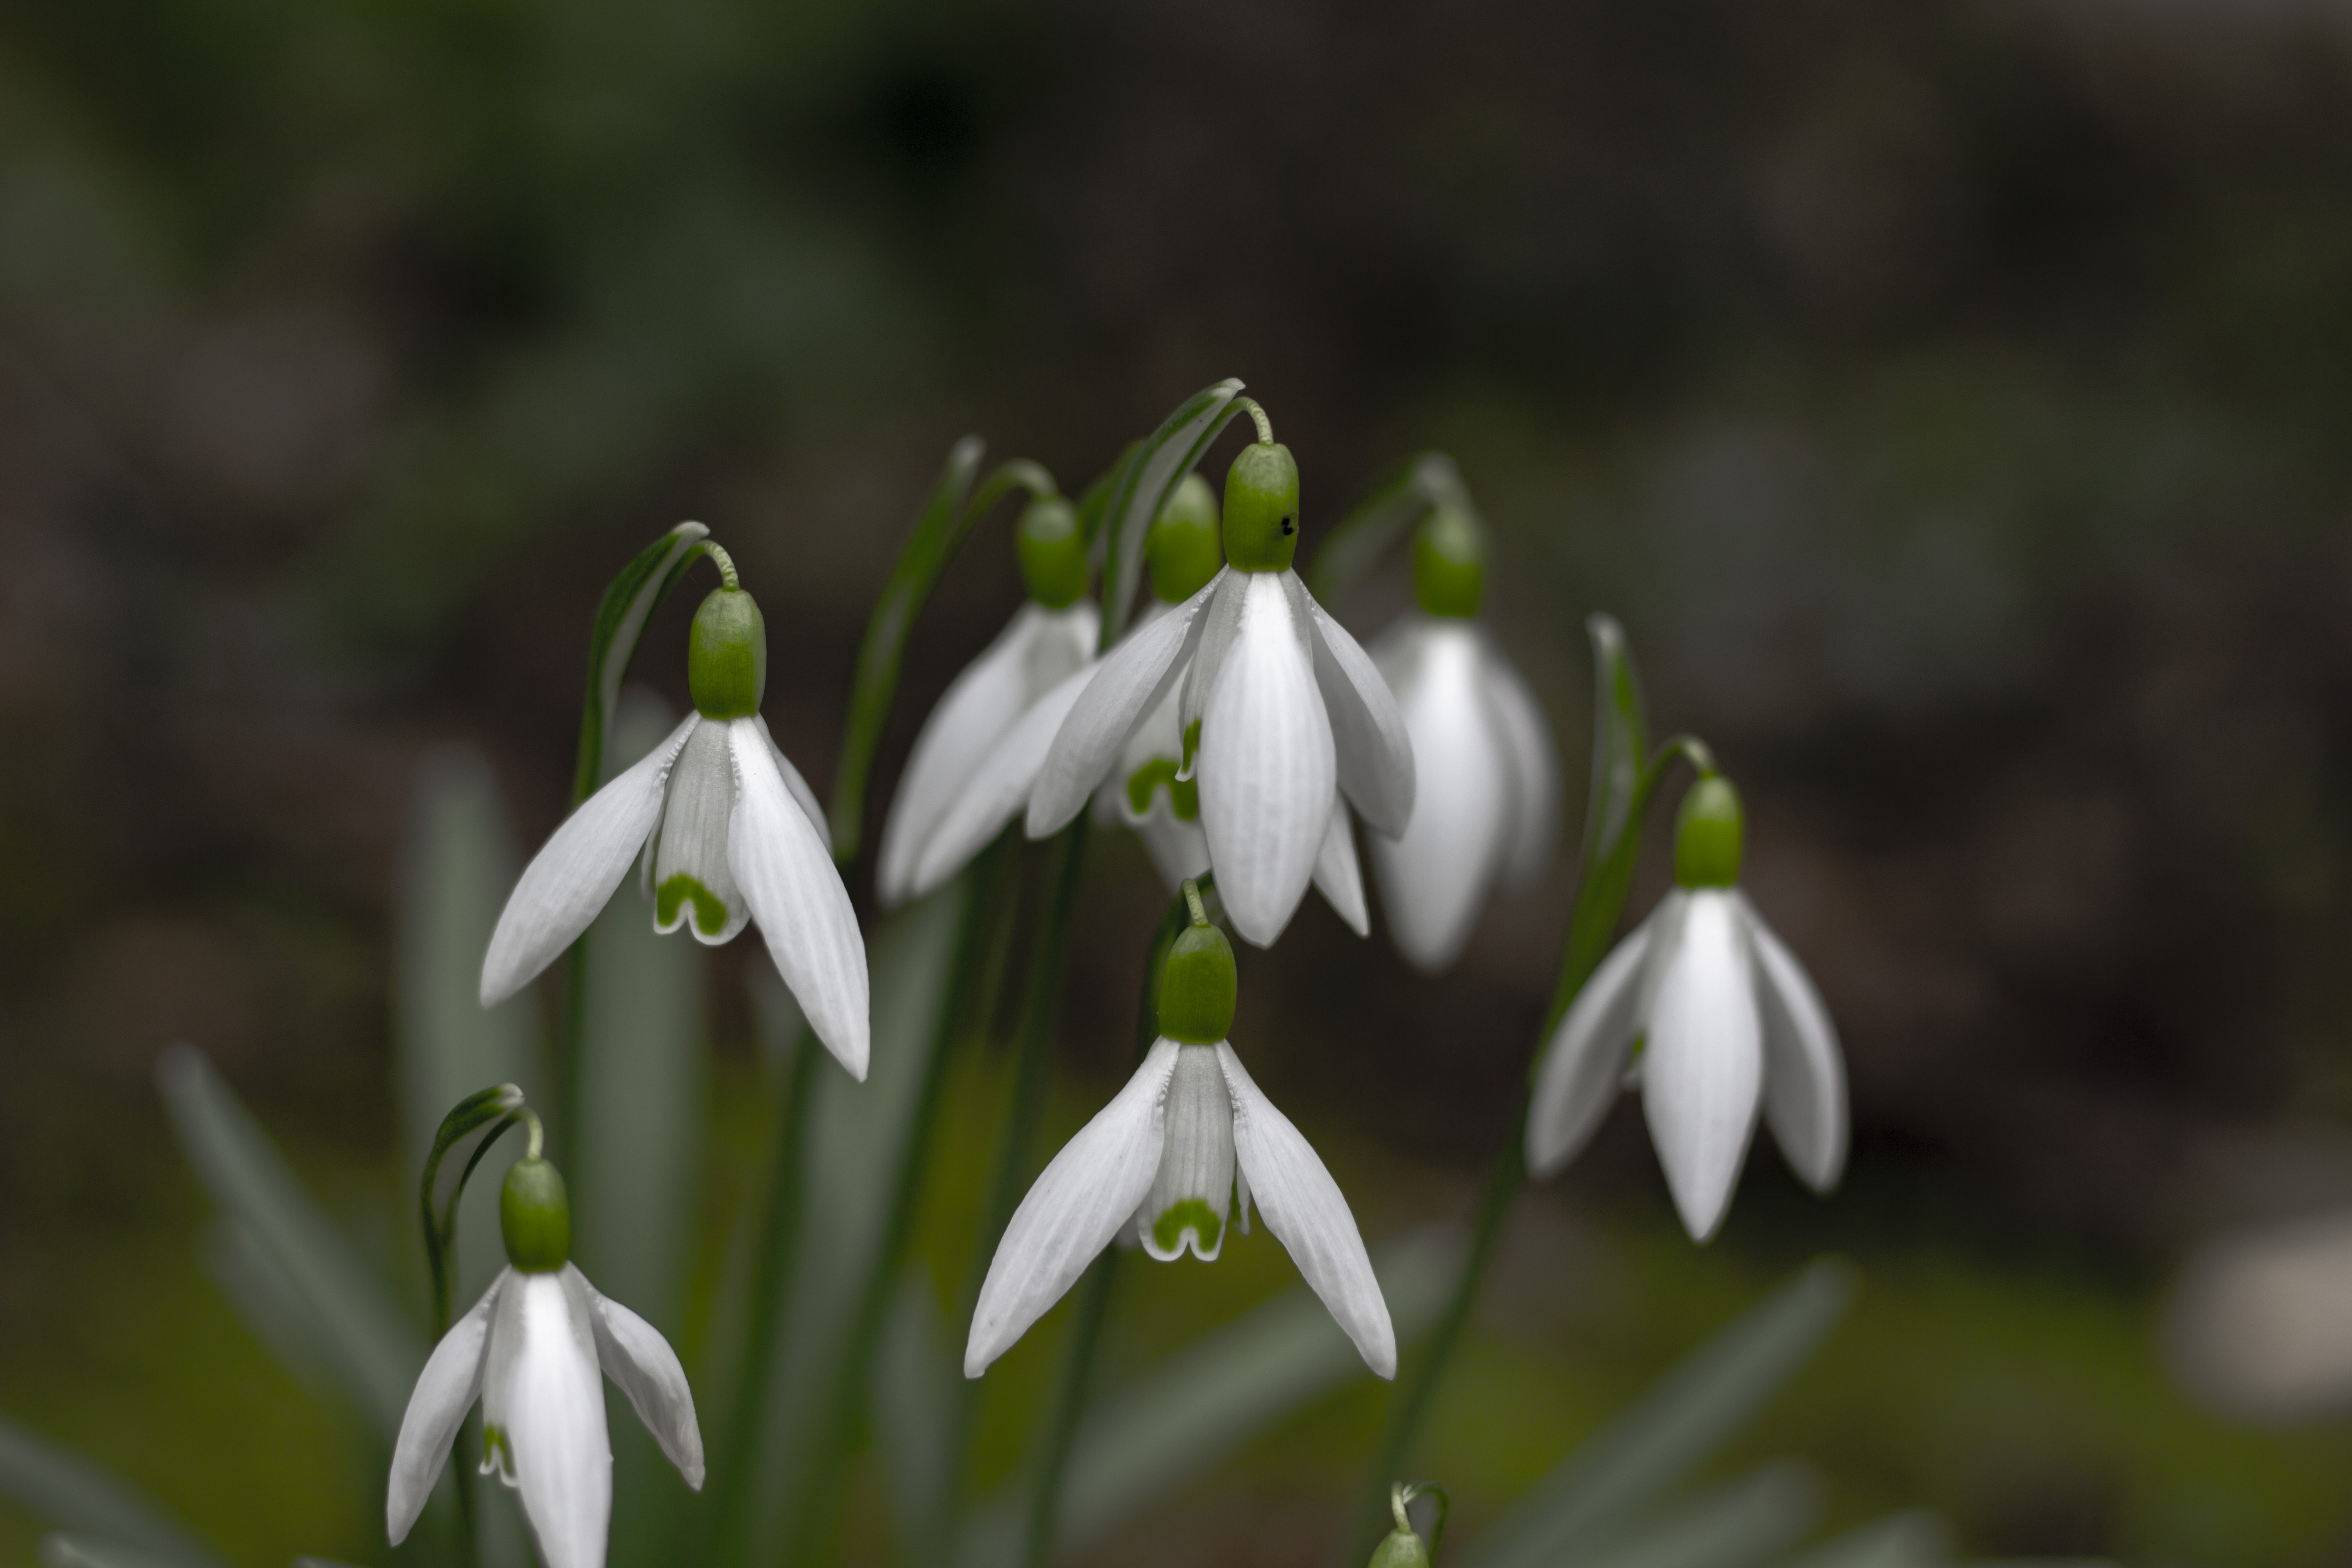 closeup photography of white snowdrop flowers